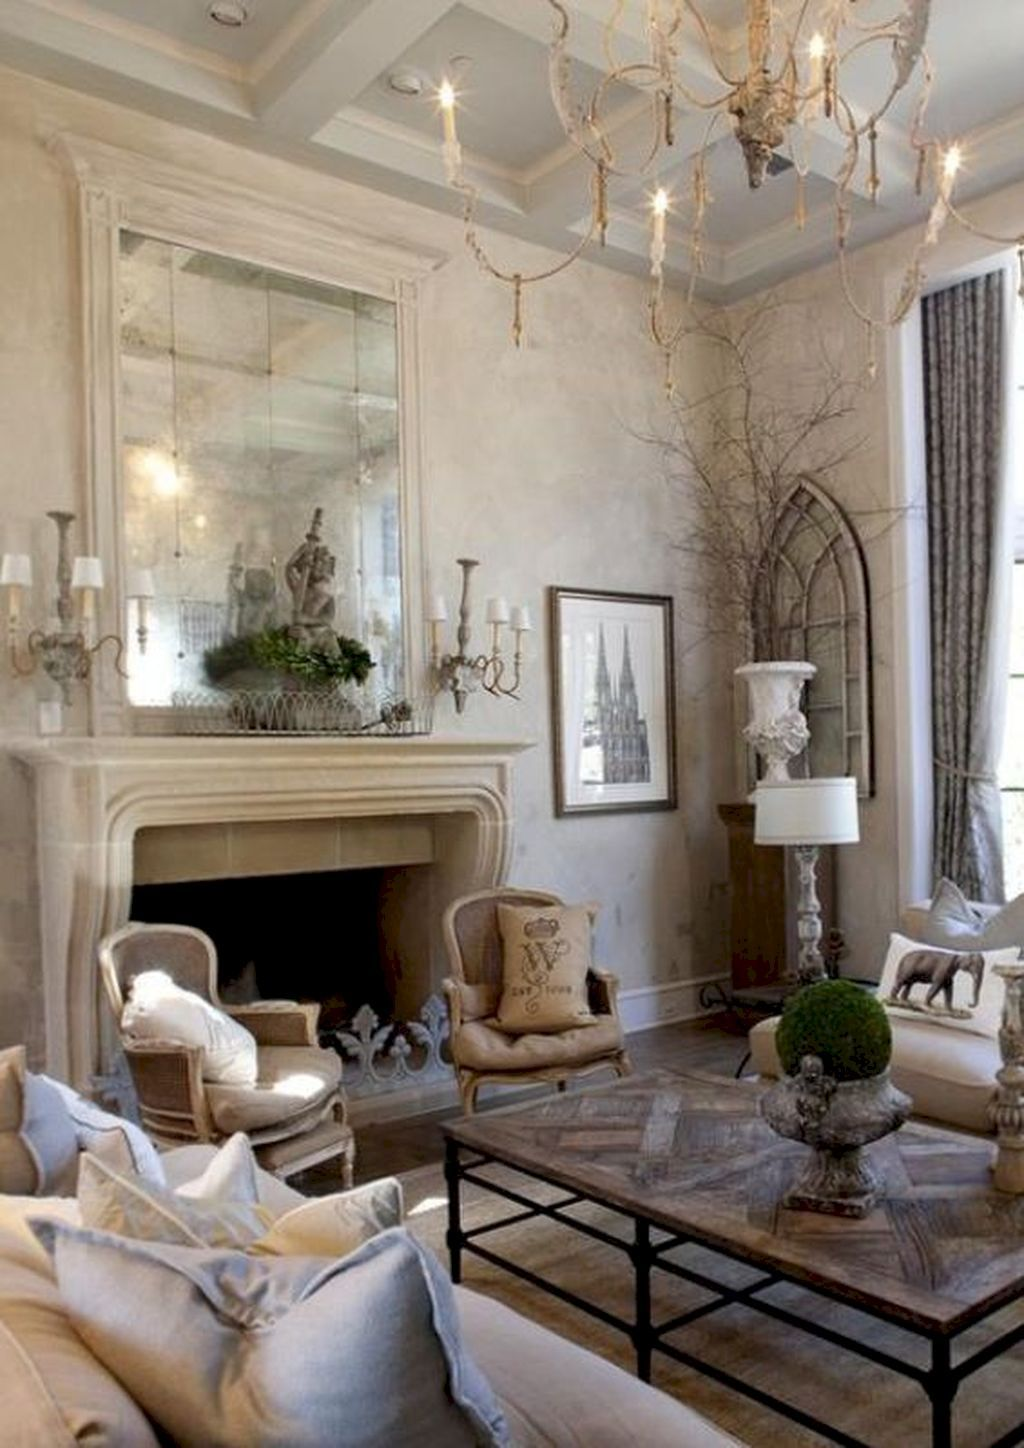 85 Fancy French Country Living Room Decor Ideas | French country ...